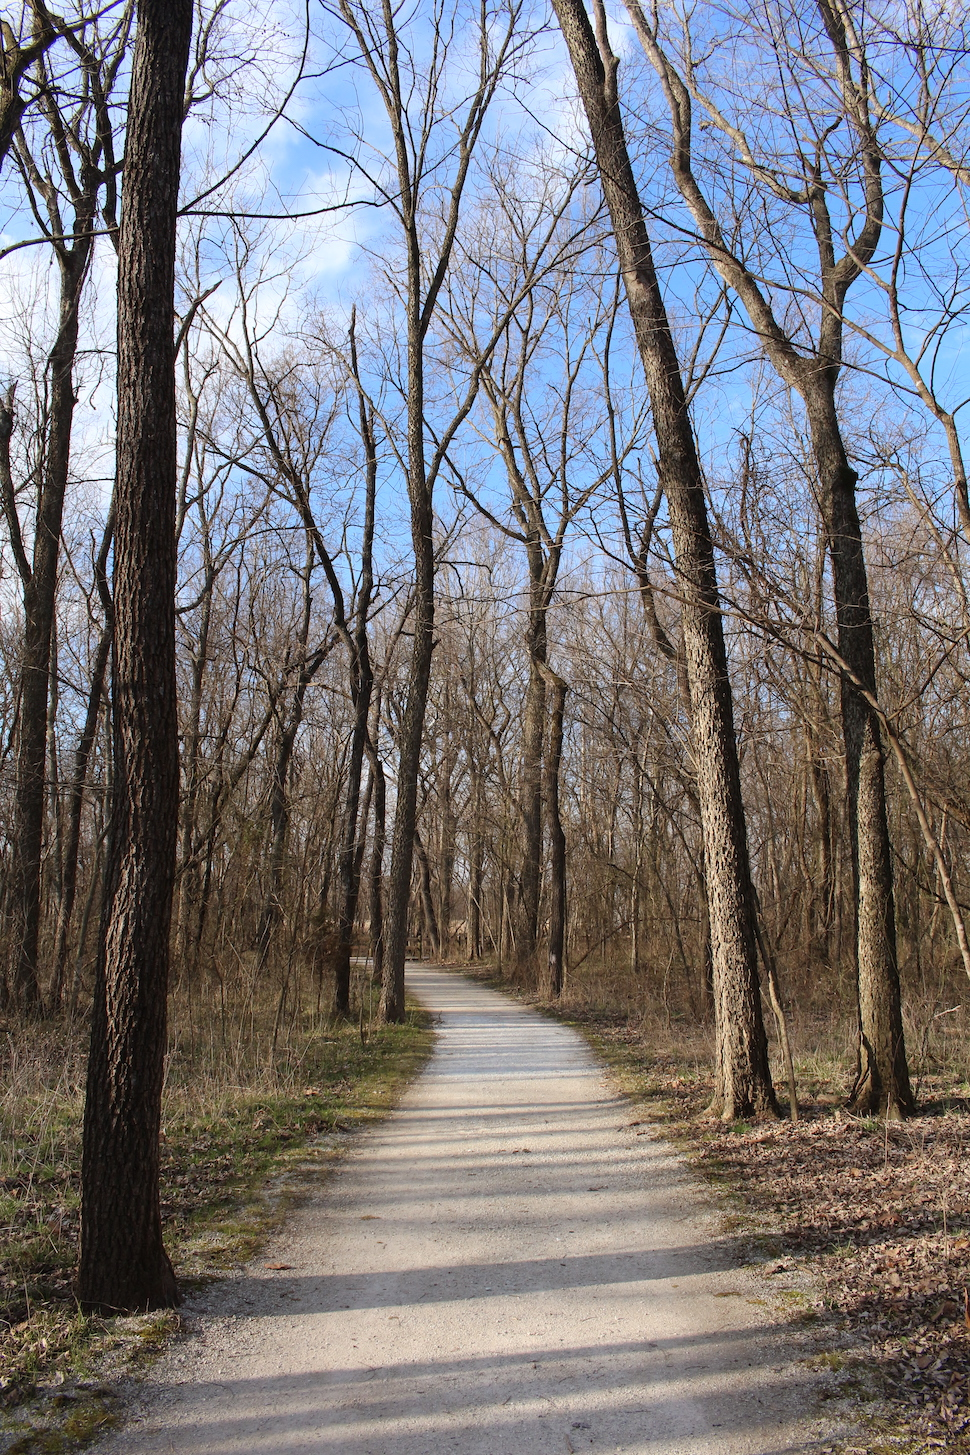 Carver Trail at George Washington Carver National Monument